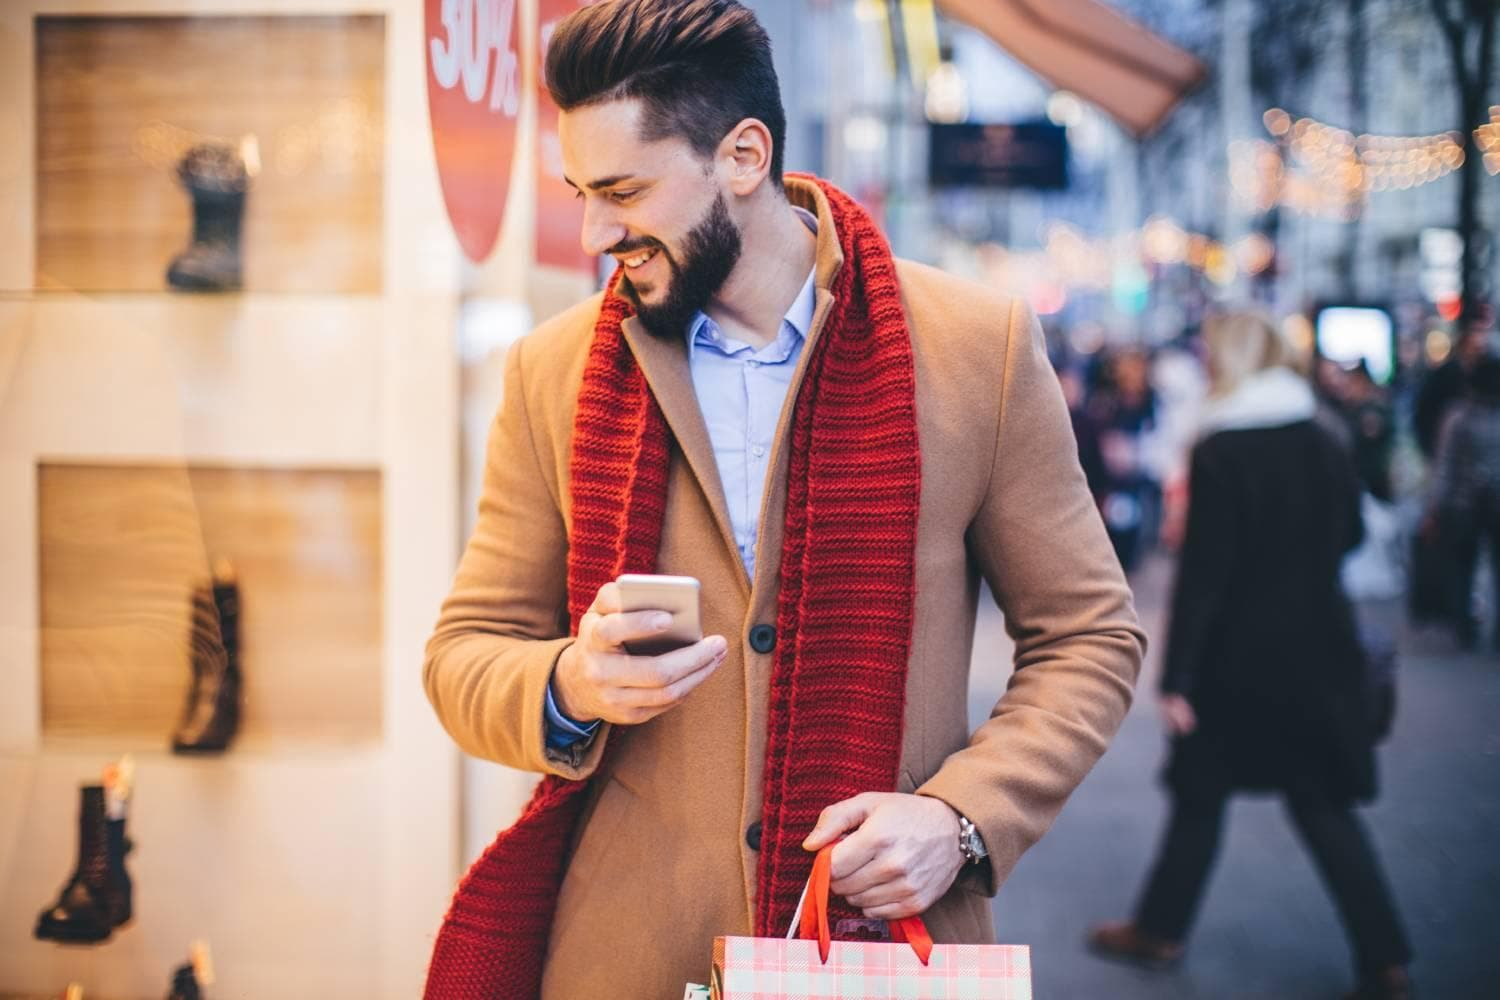 Man wearing red scarf window shopping